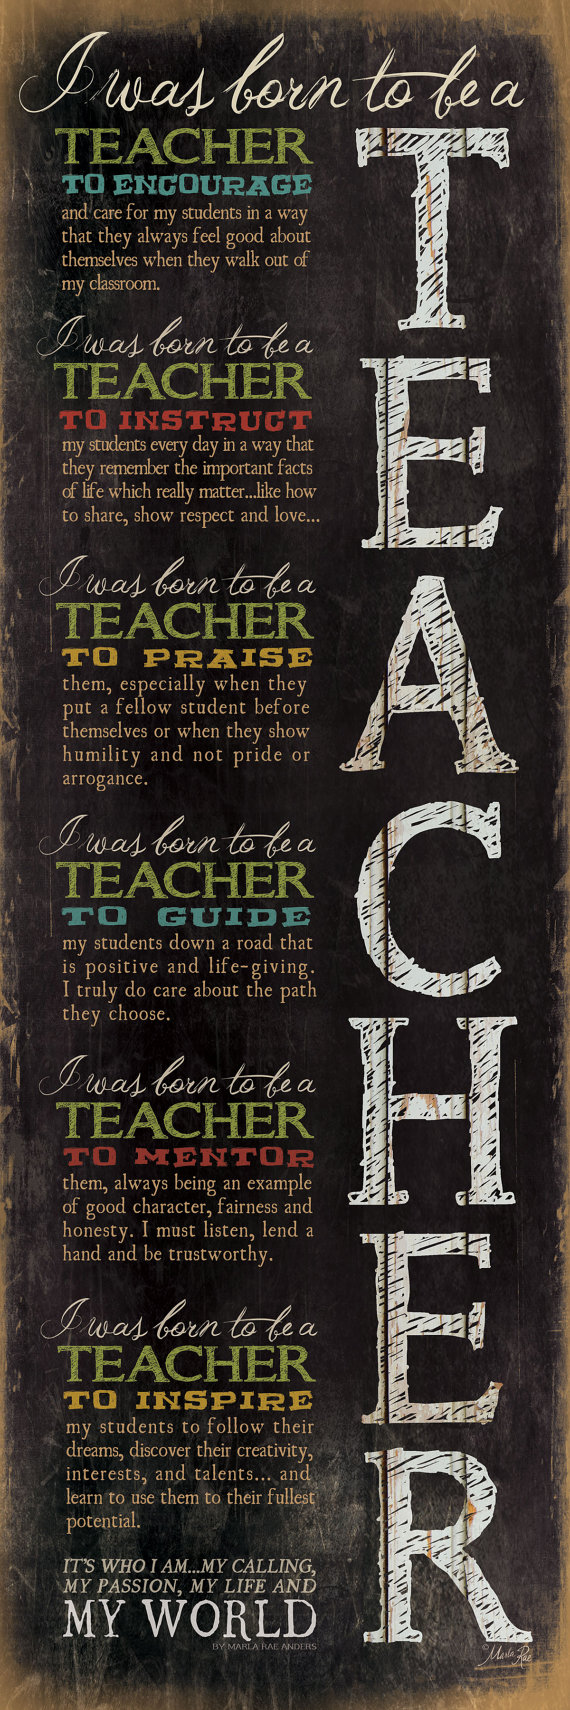 i was born to be a teacher poster